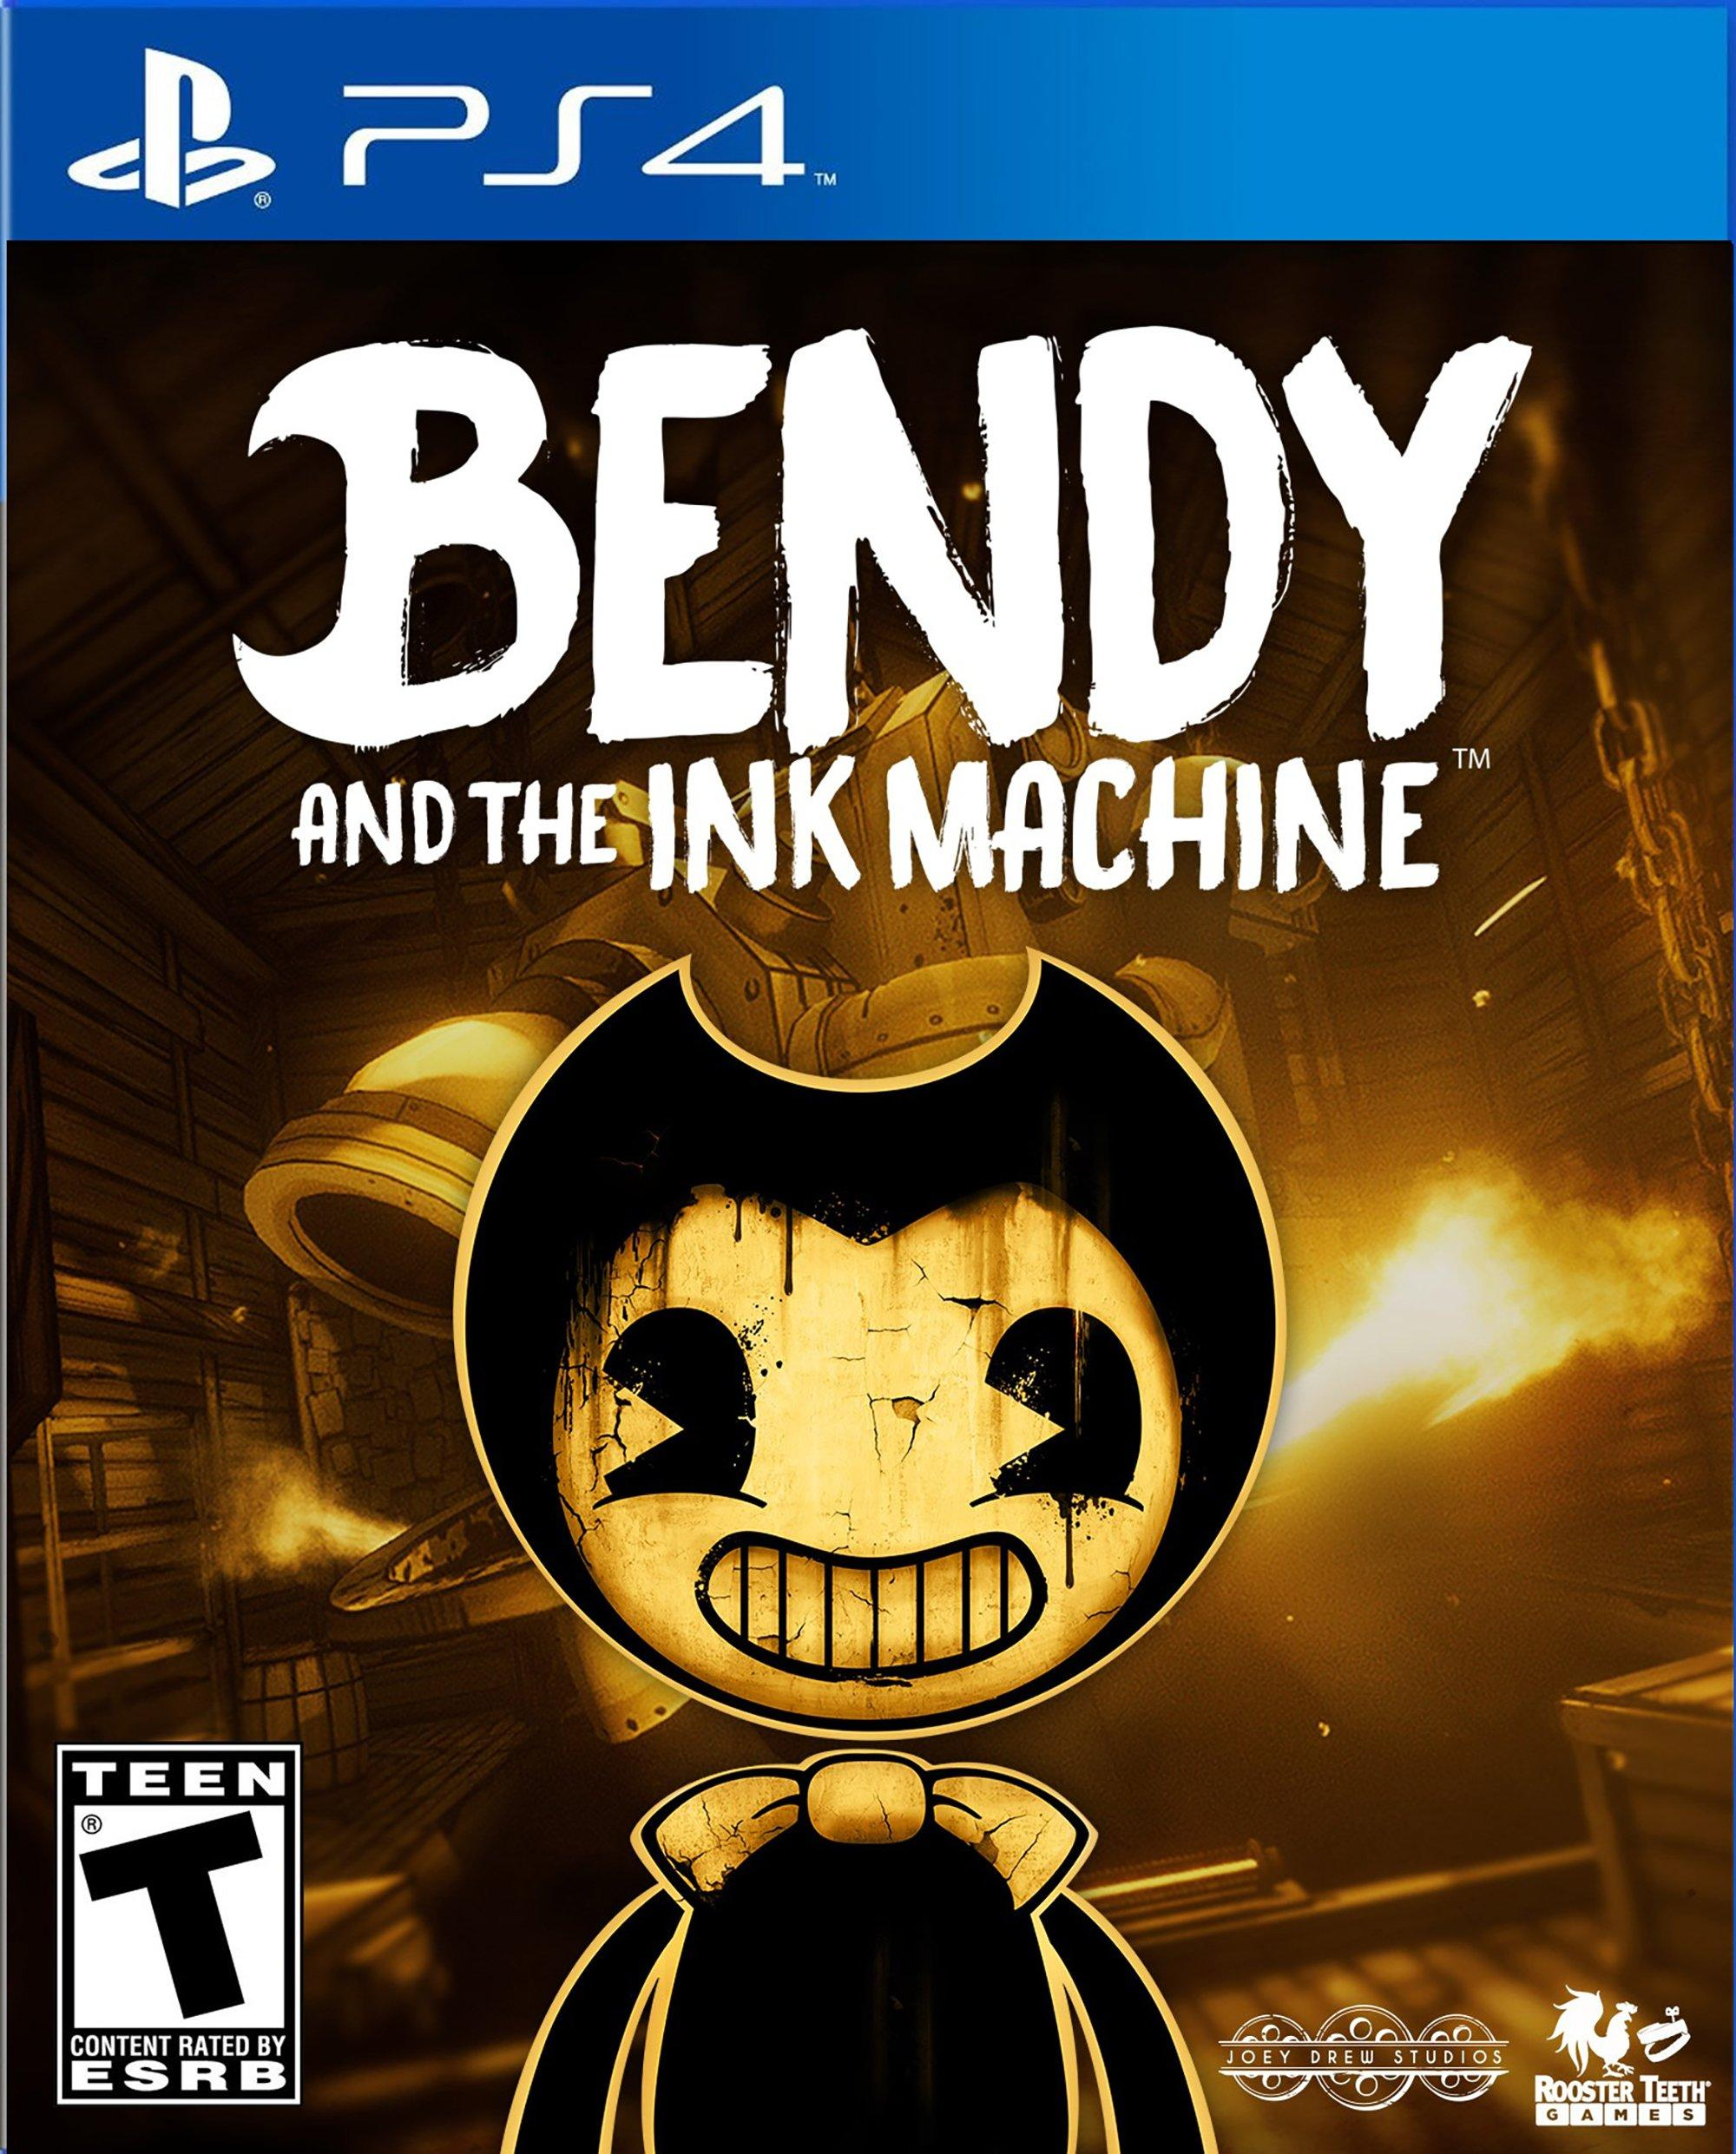 Bendy and the Ink Machine | PlayStation 4 | GameStop